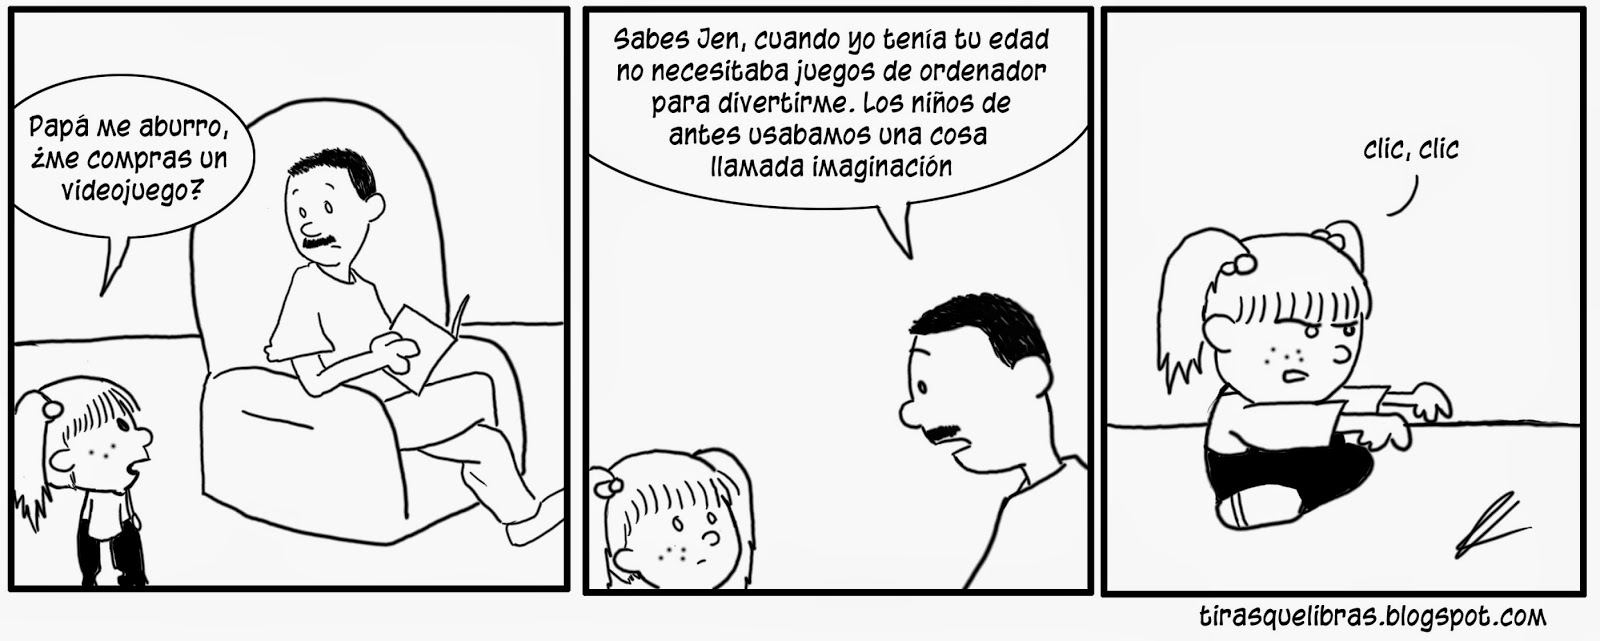 webcomic, jen quiere que le compren un ordenador